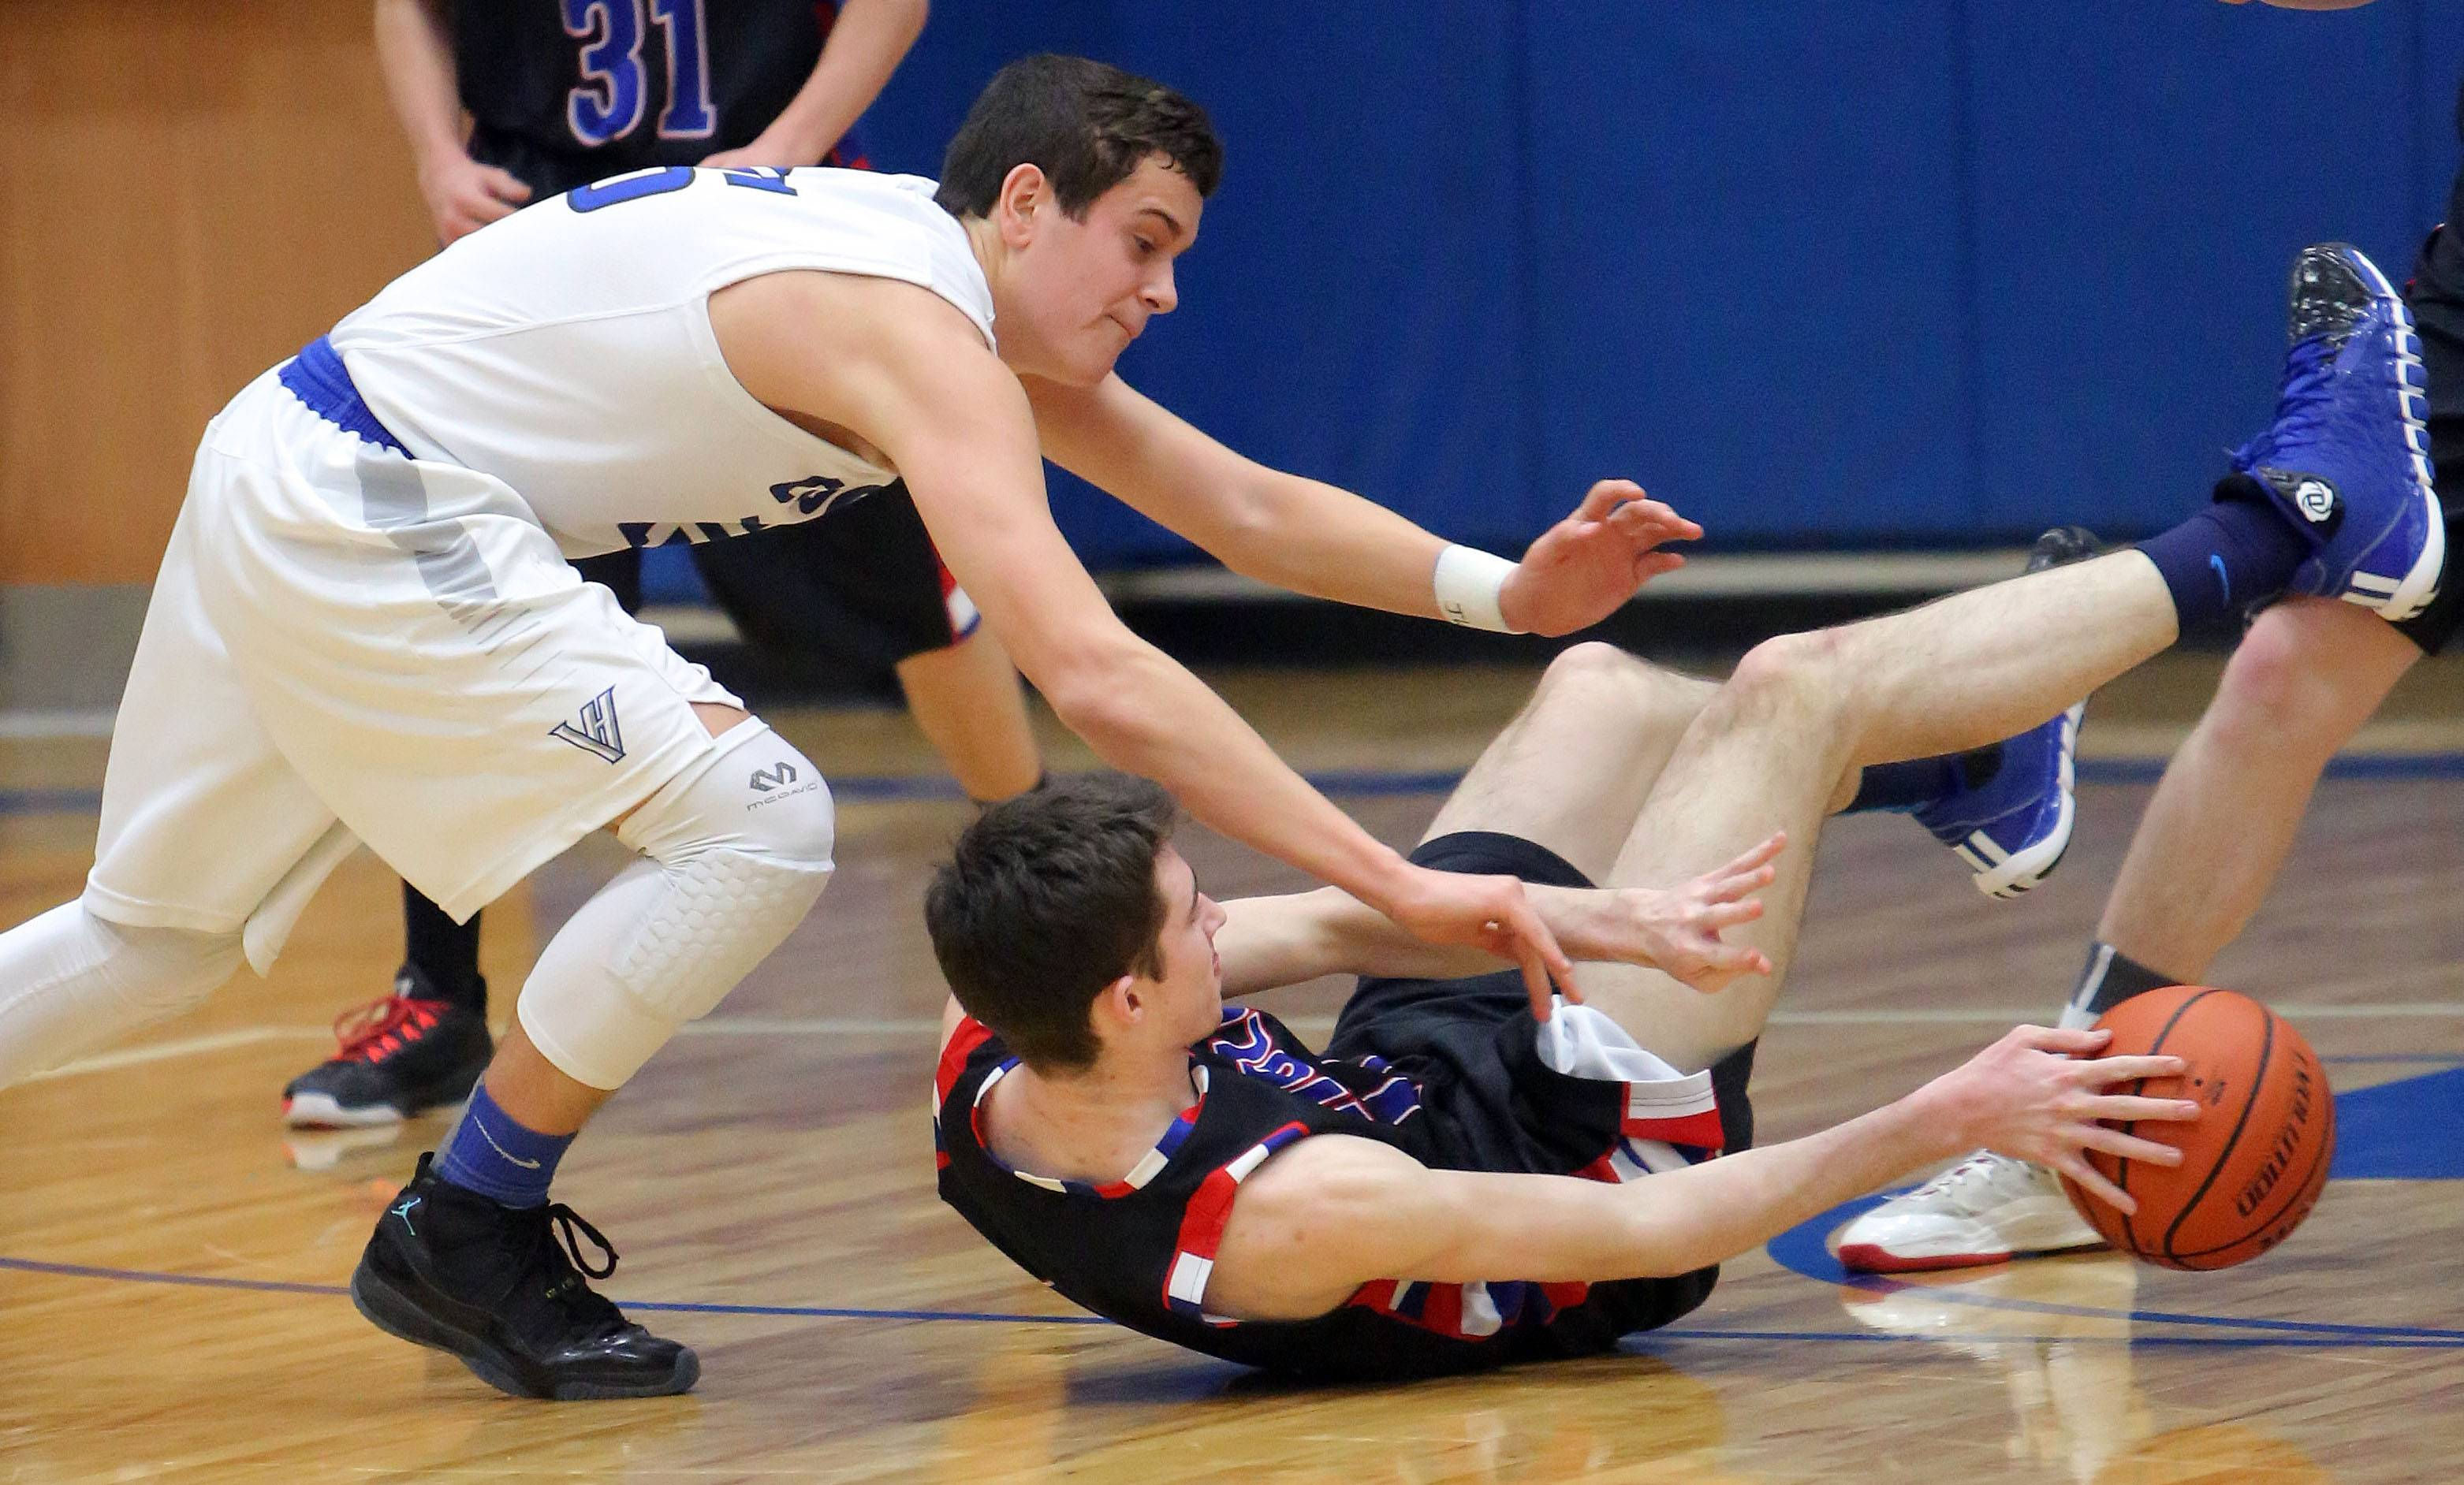 Vernon Hills' Bo Manso, left, and Lake's Jordan Mercure scramble for a loose ball.